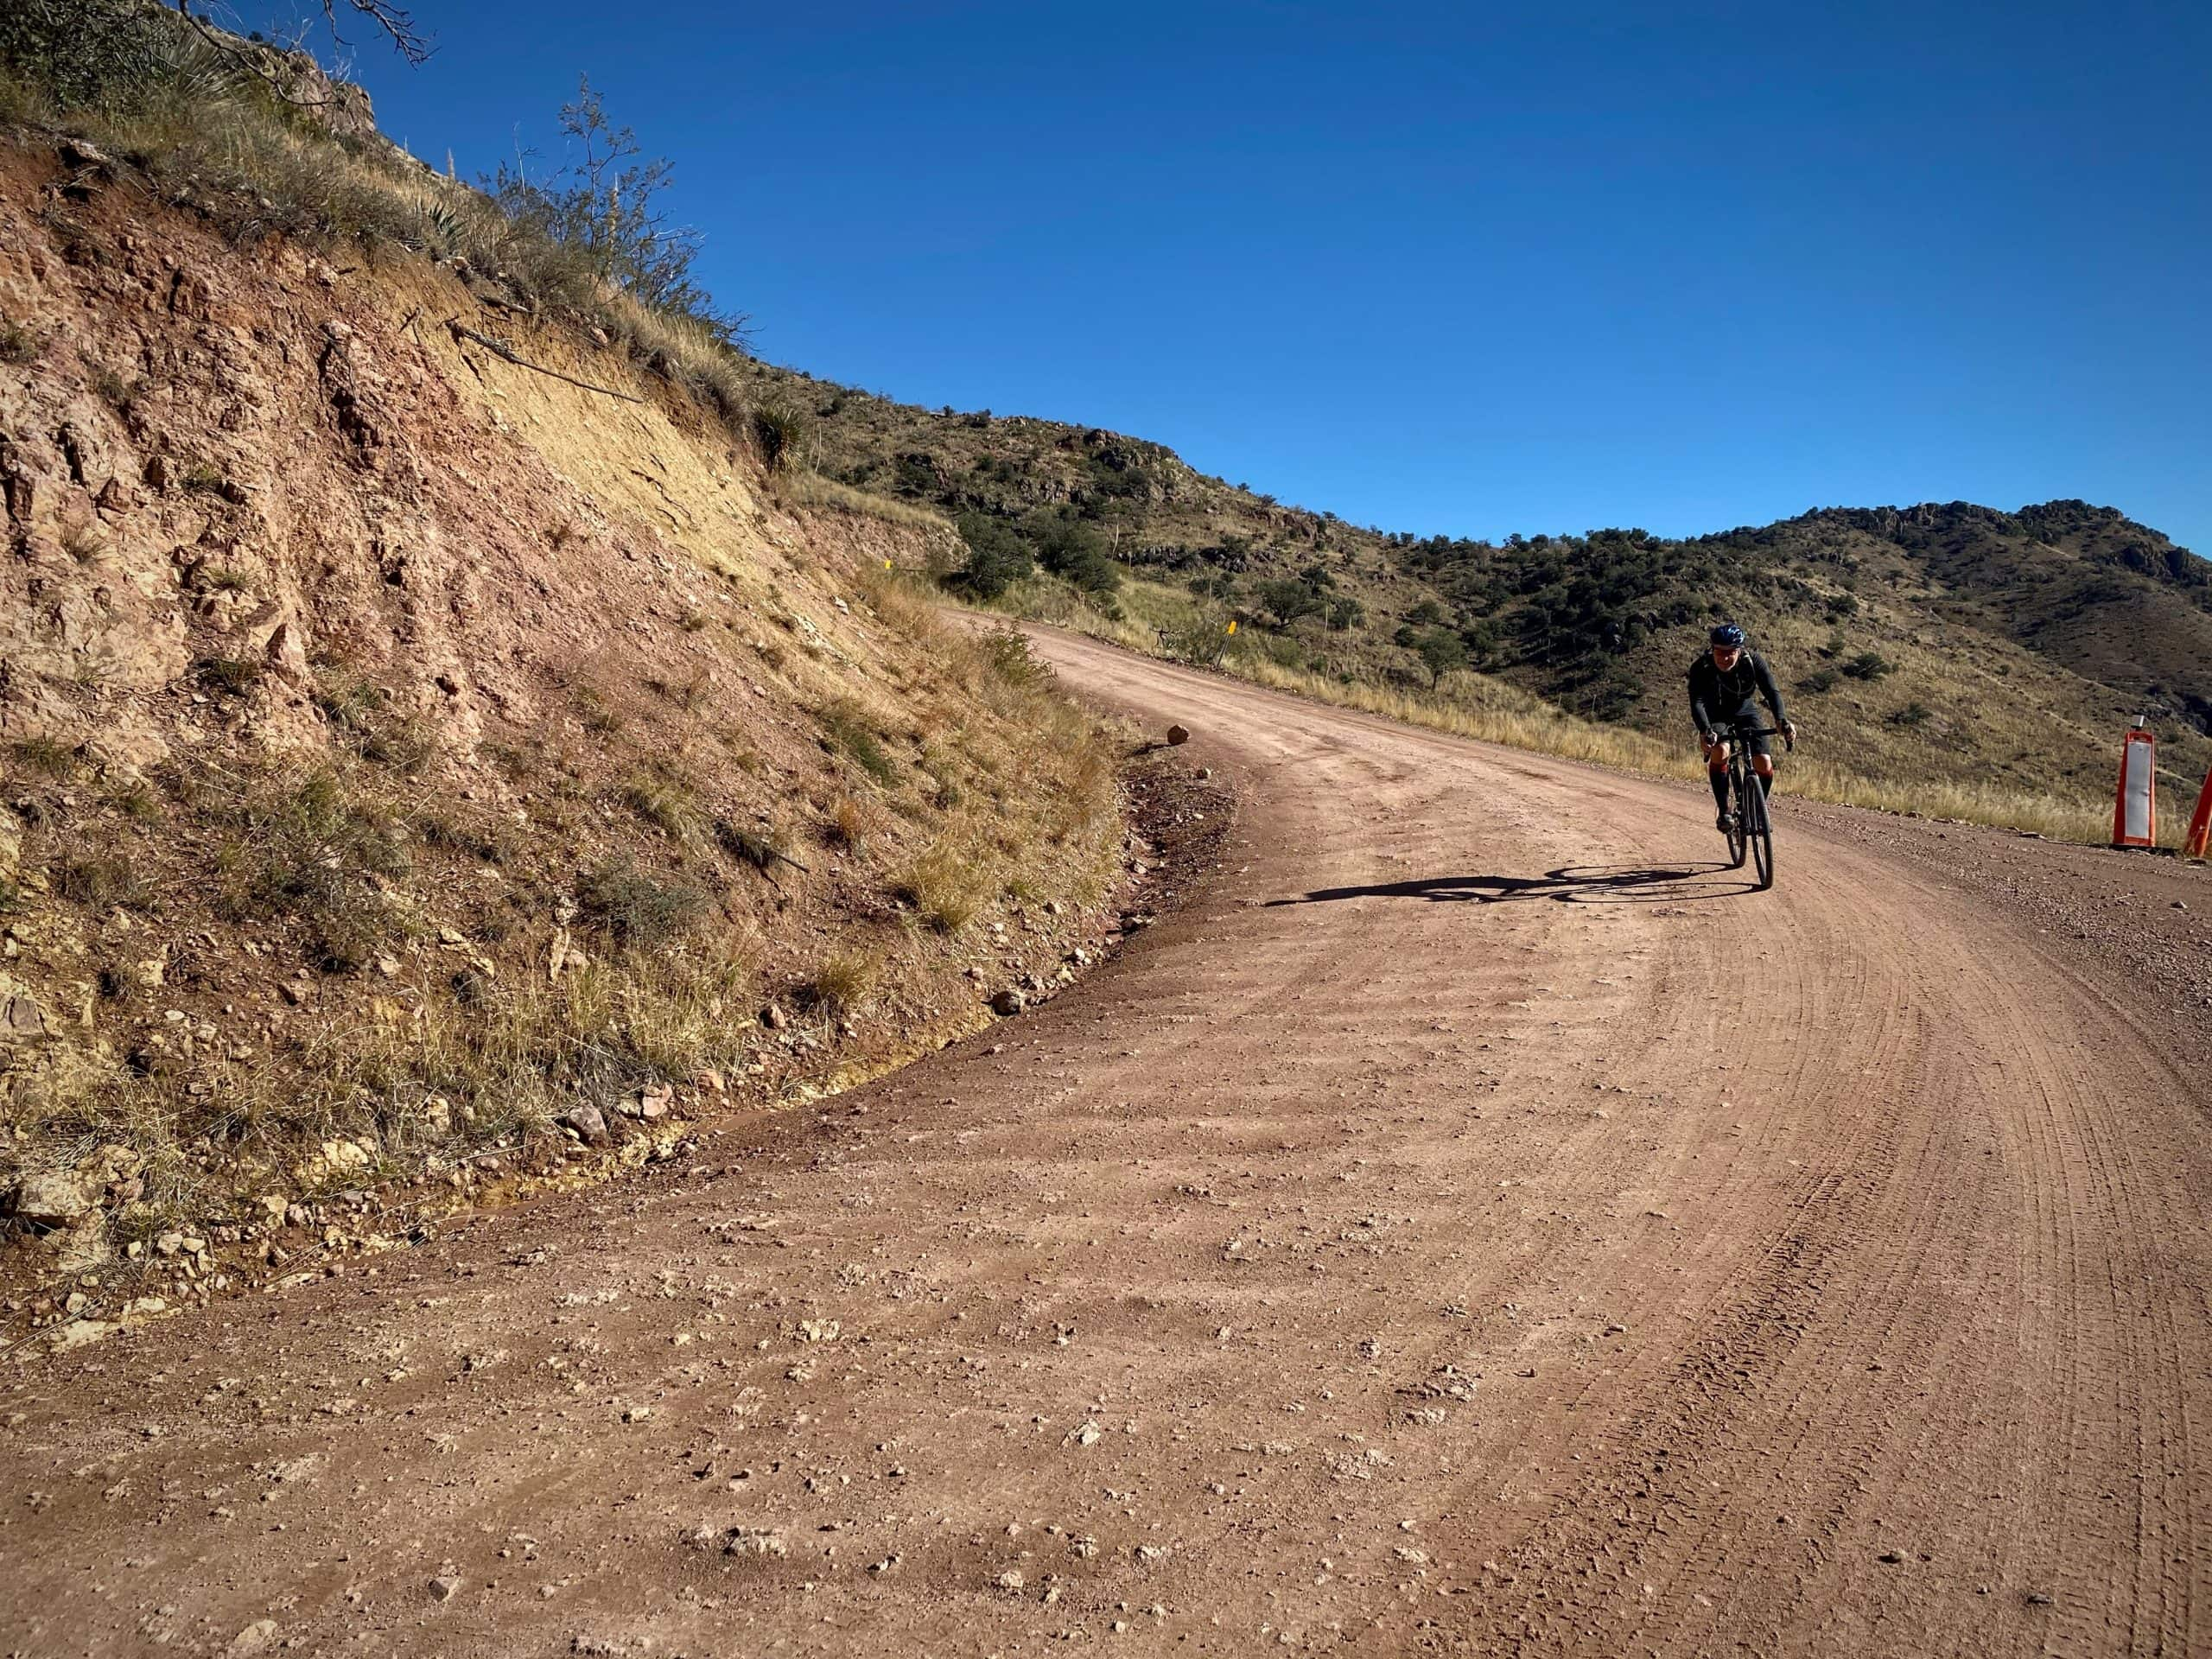 Woman cyclist descending gravel, Ruby road, with some washboard in the Coronado National Forest.